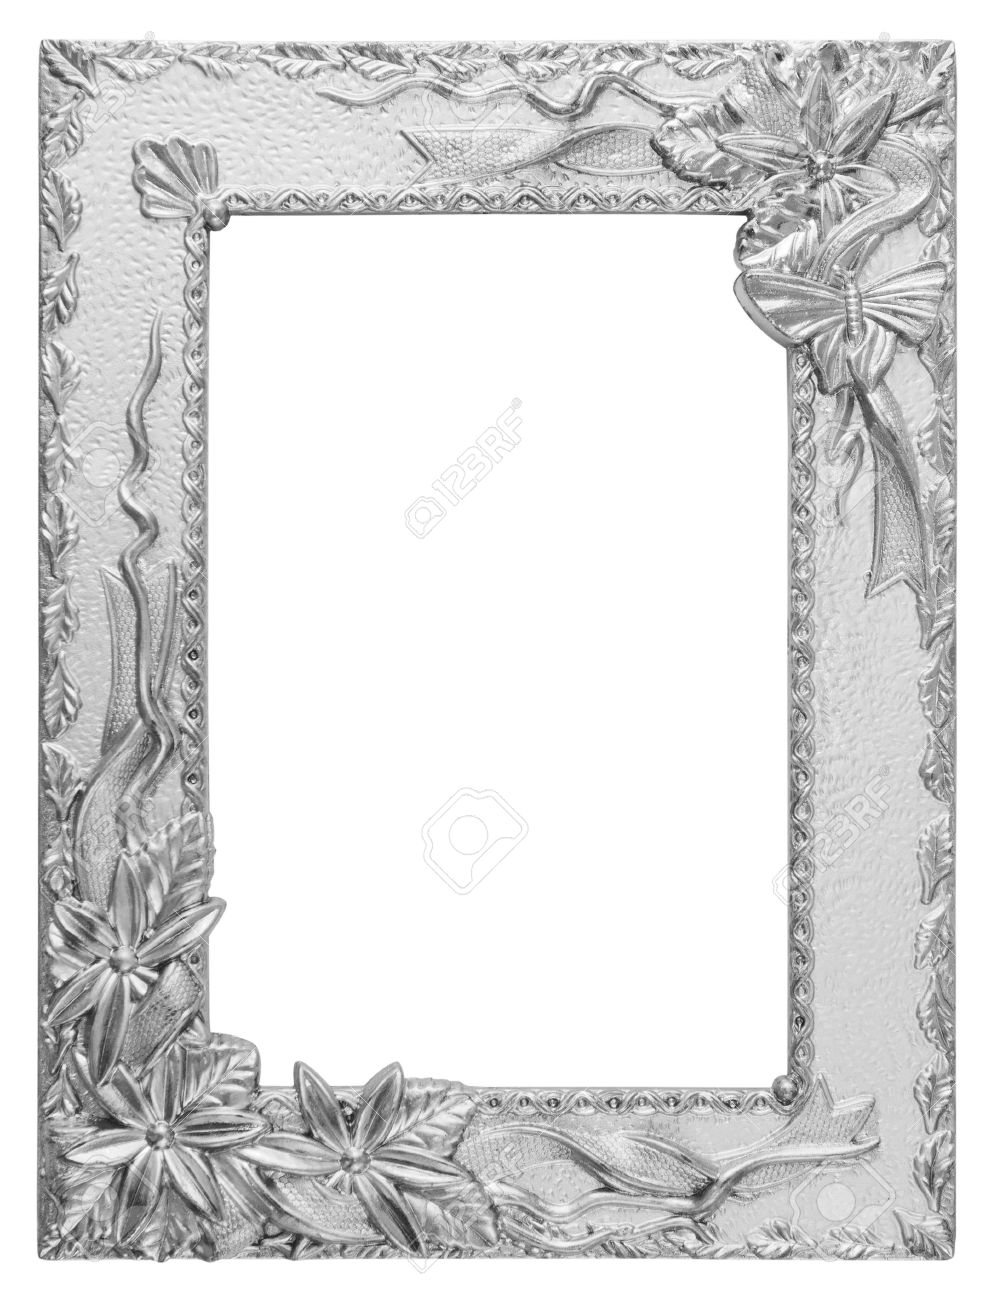 antique love silver frame isolated on white - 20463436